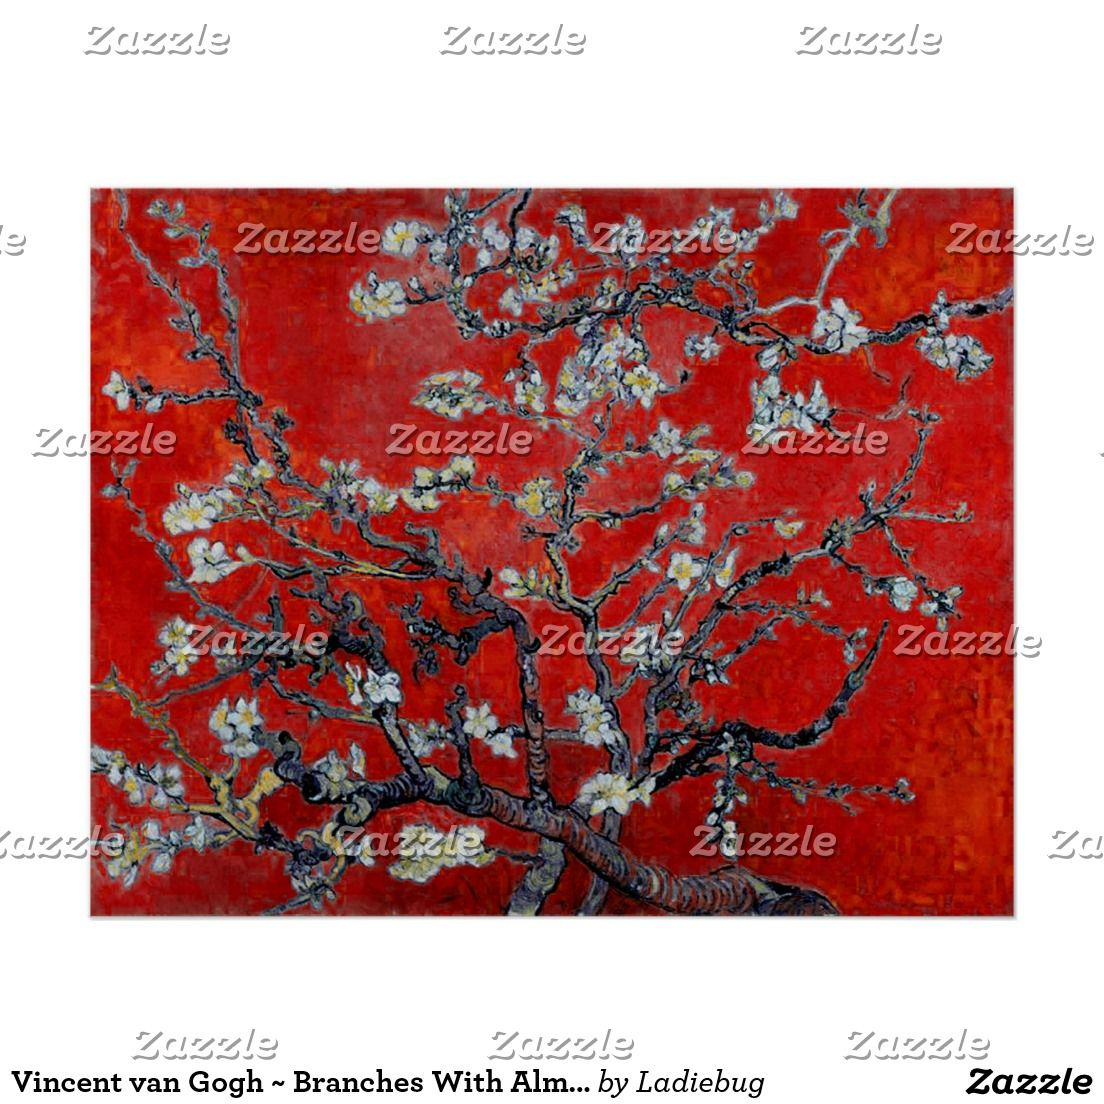 Vincent van Gogh ~ Branches With Almond Blossom | art | Pinterest ... for Almond Blossom Van Gogh Poster  lp0lpmzq